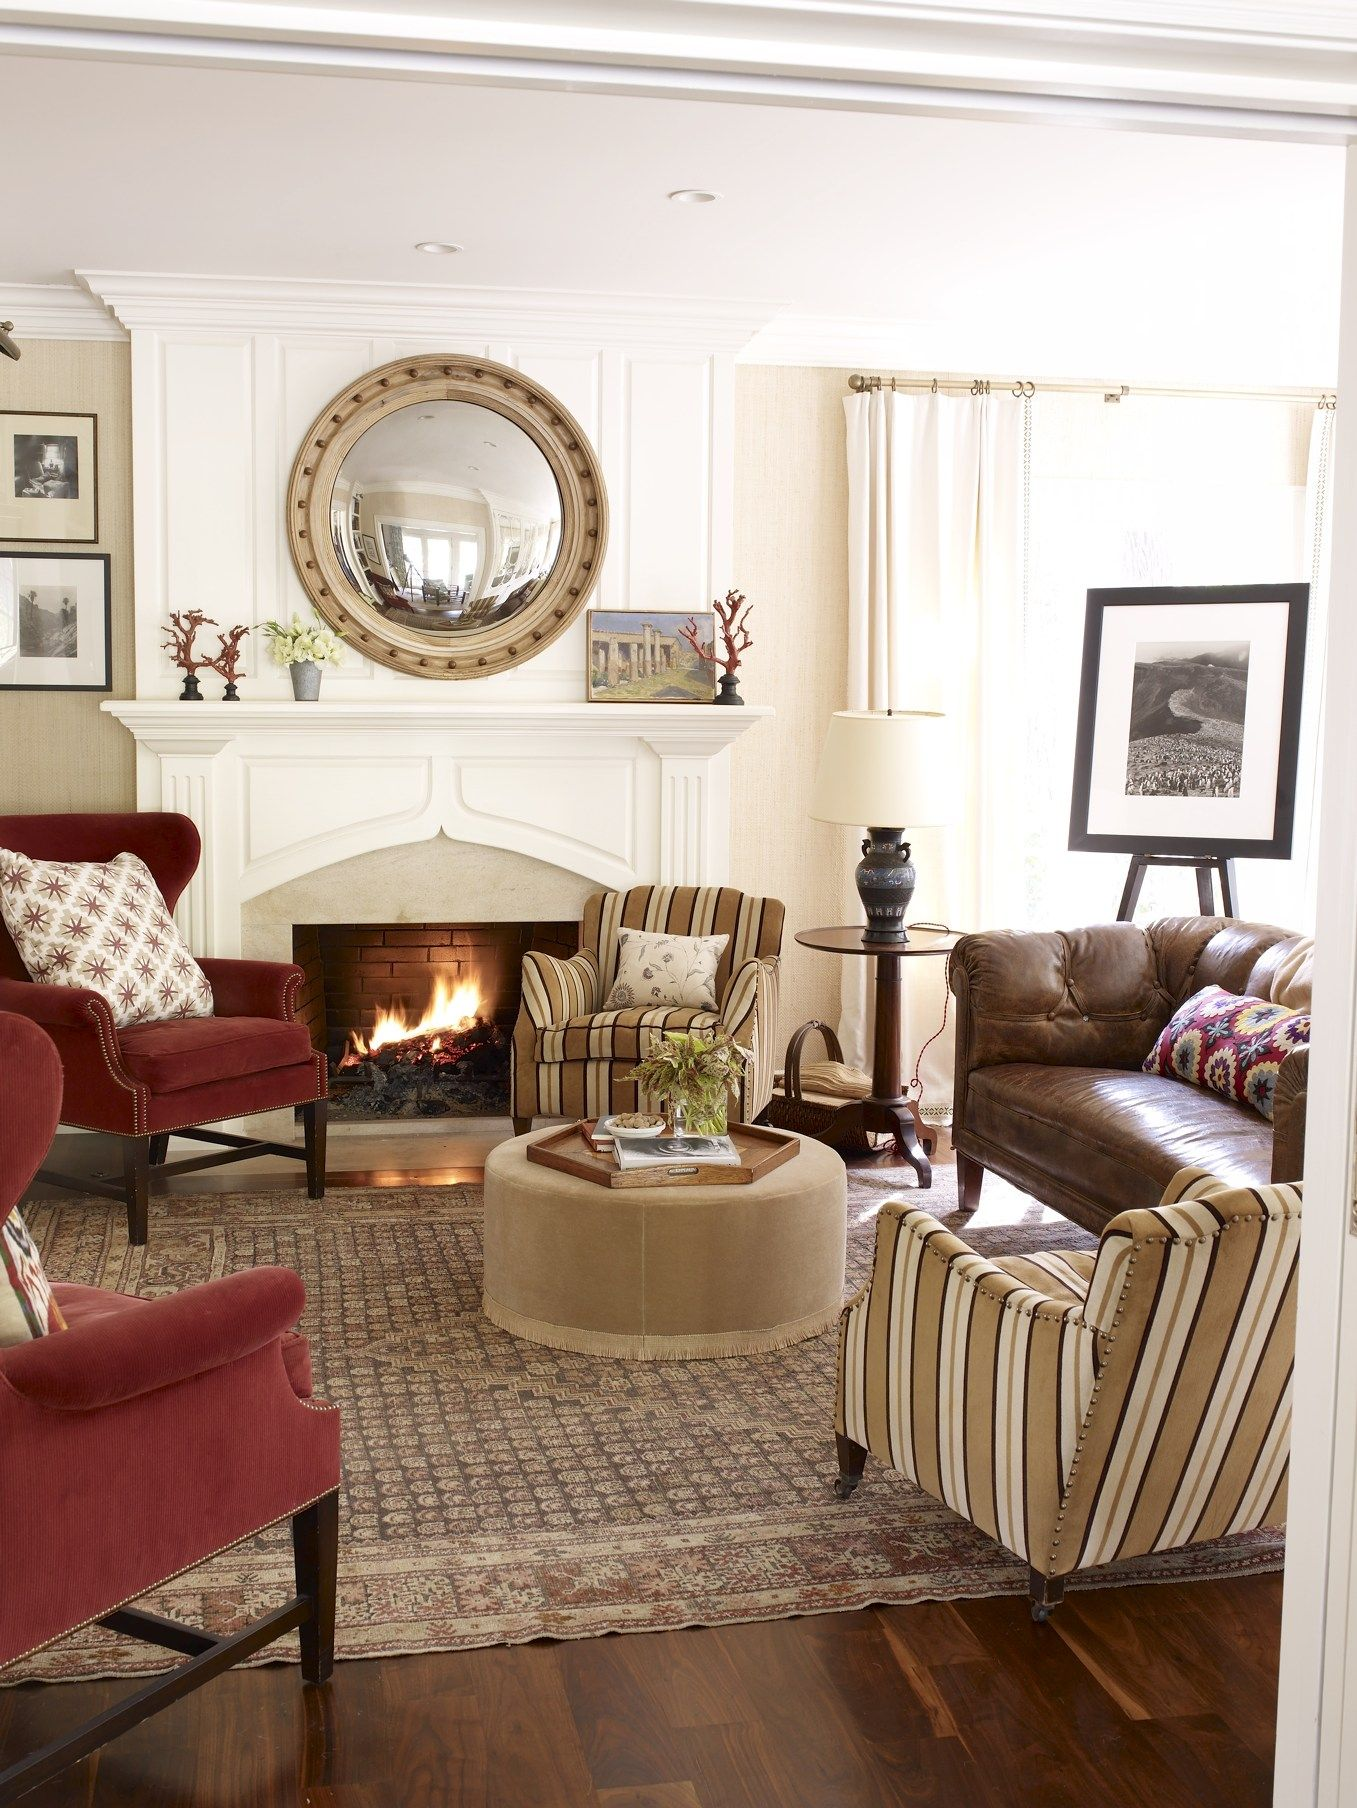 Small Great Room Designs: Pin By Florence Mraz On Living Room